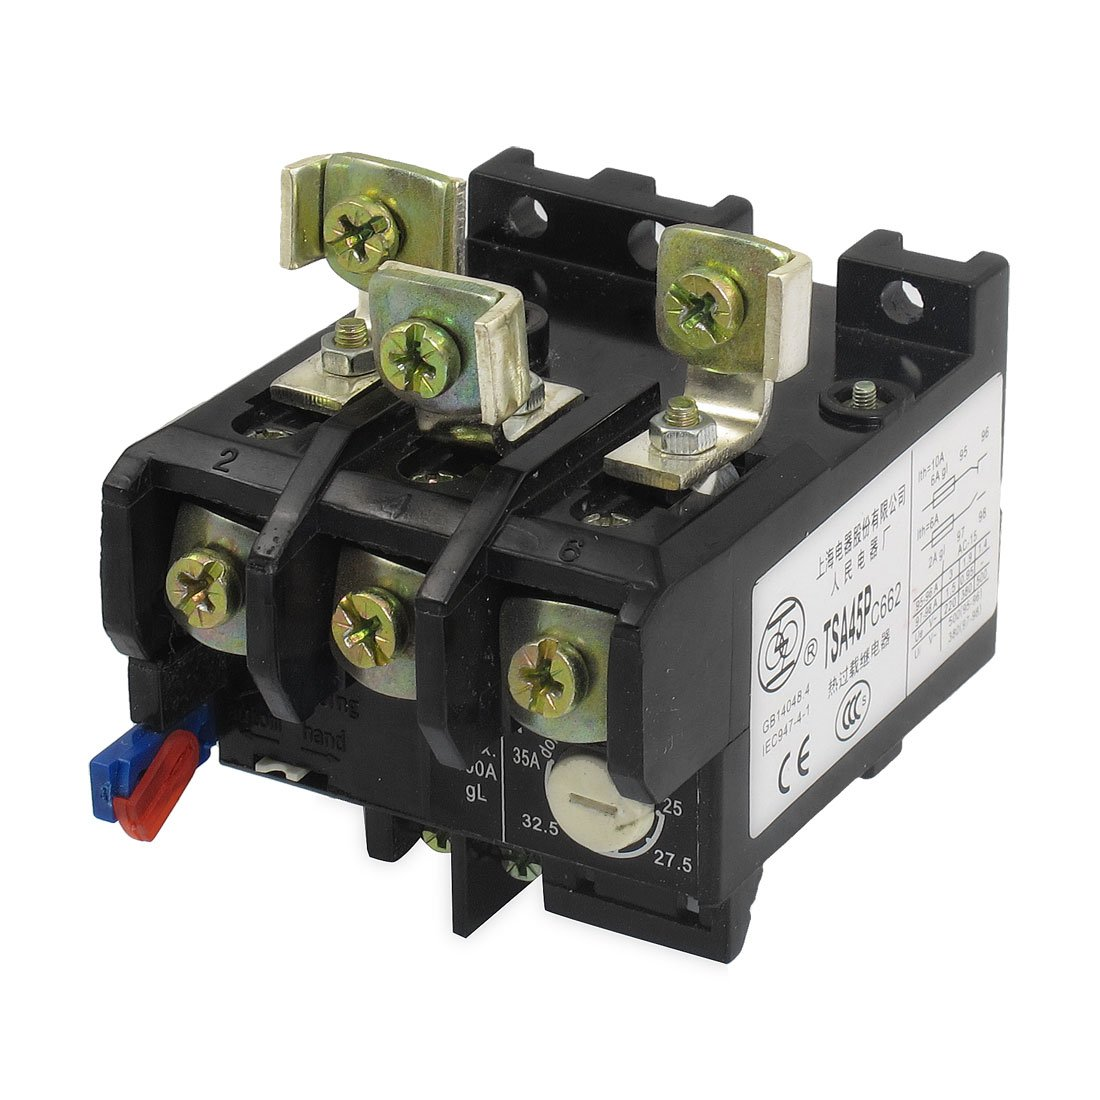 uxcell 25-35A Adjustable 3 Poles 1NO 1NC Thermal Overload Relay